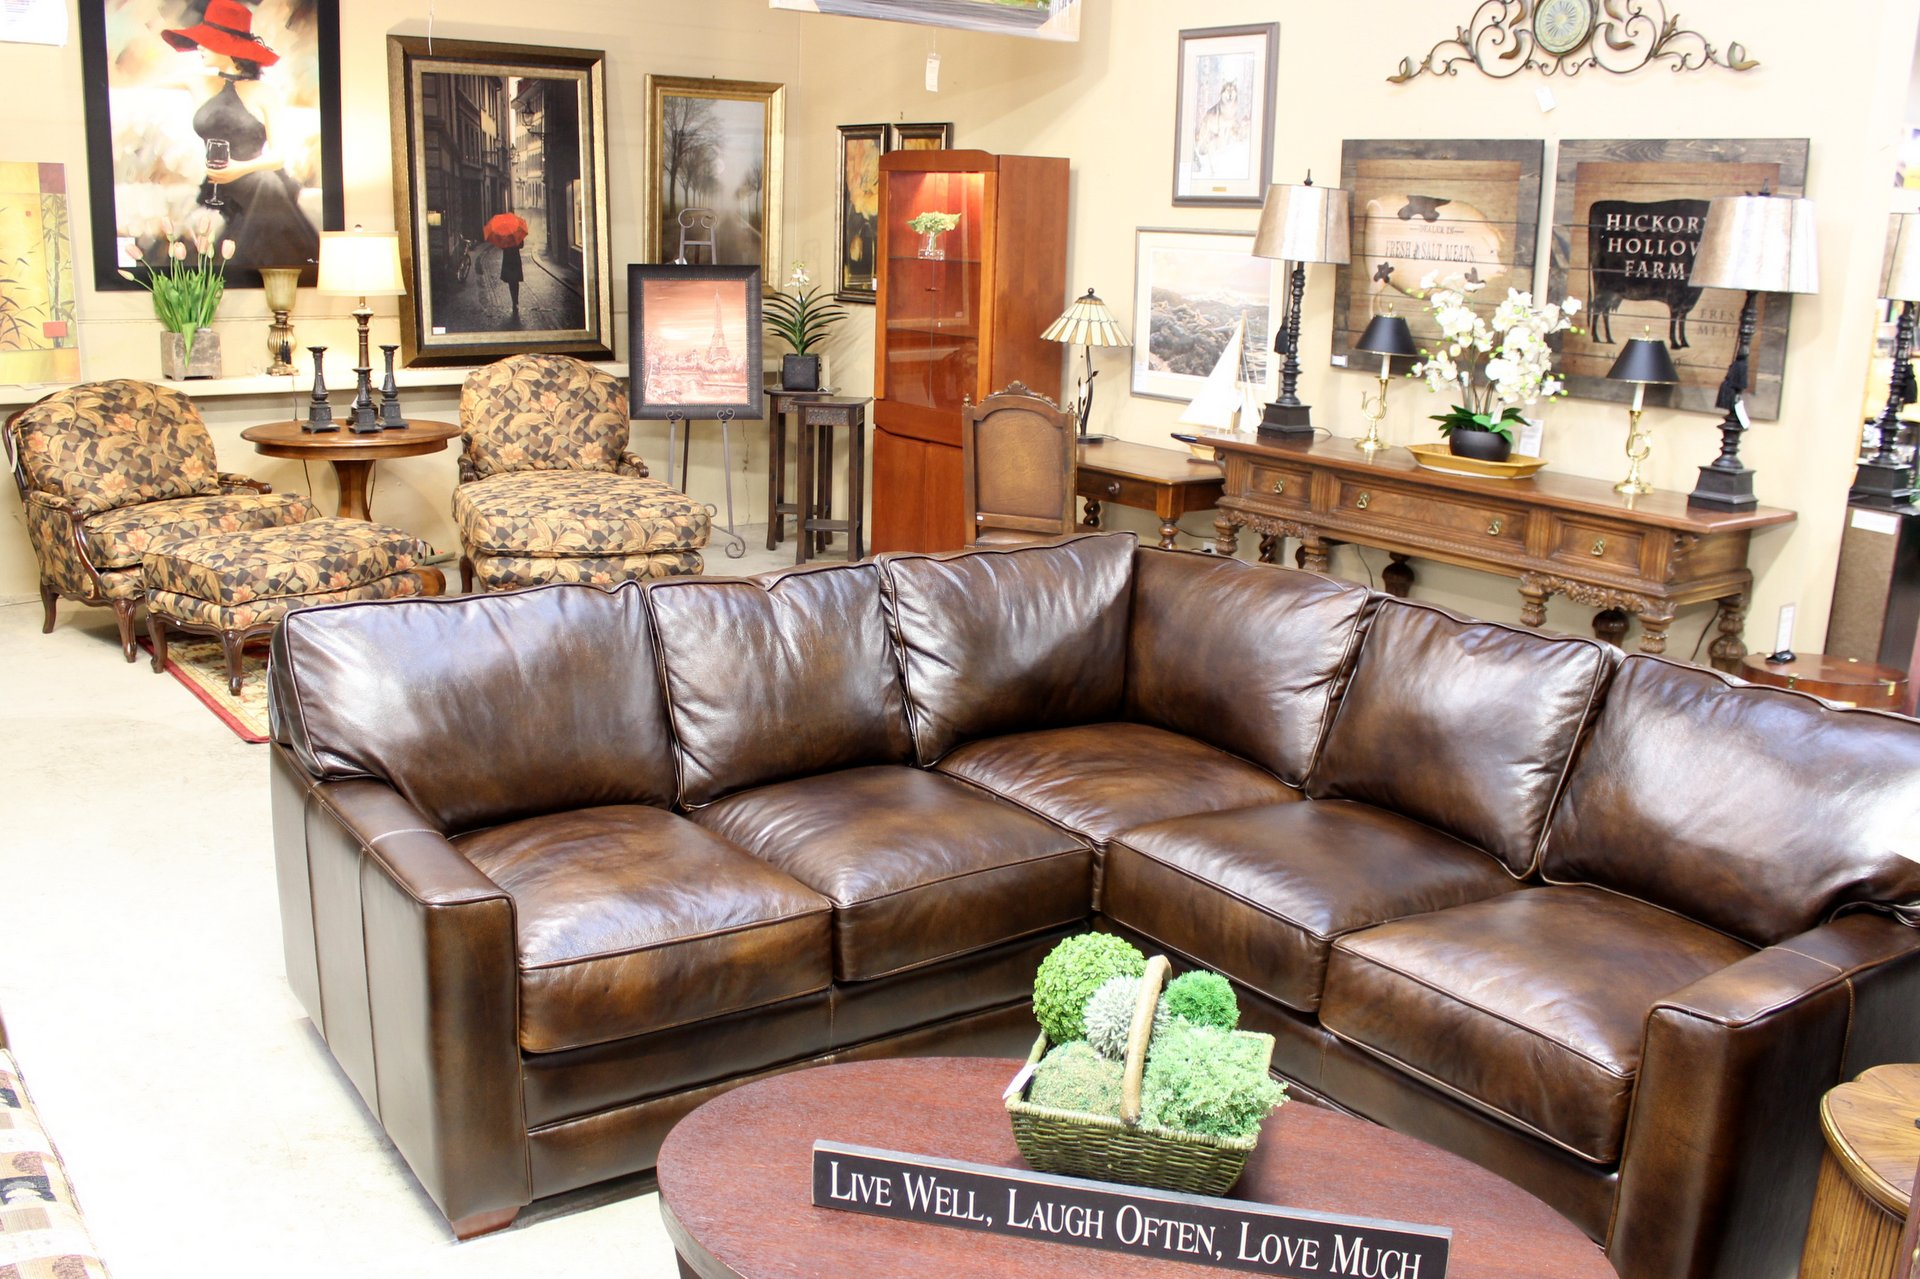 Second Hand Furniture Stores Near Me Gorgeous Upscale Consignment  Upscale Used Furniture & Decor Design Decoration